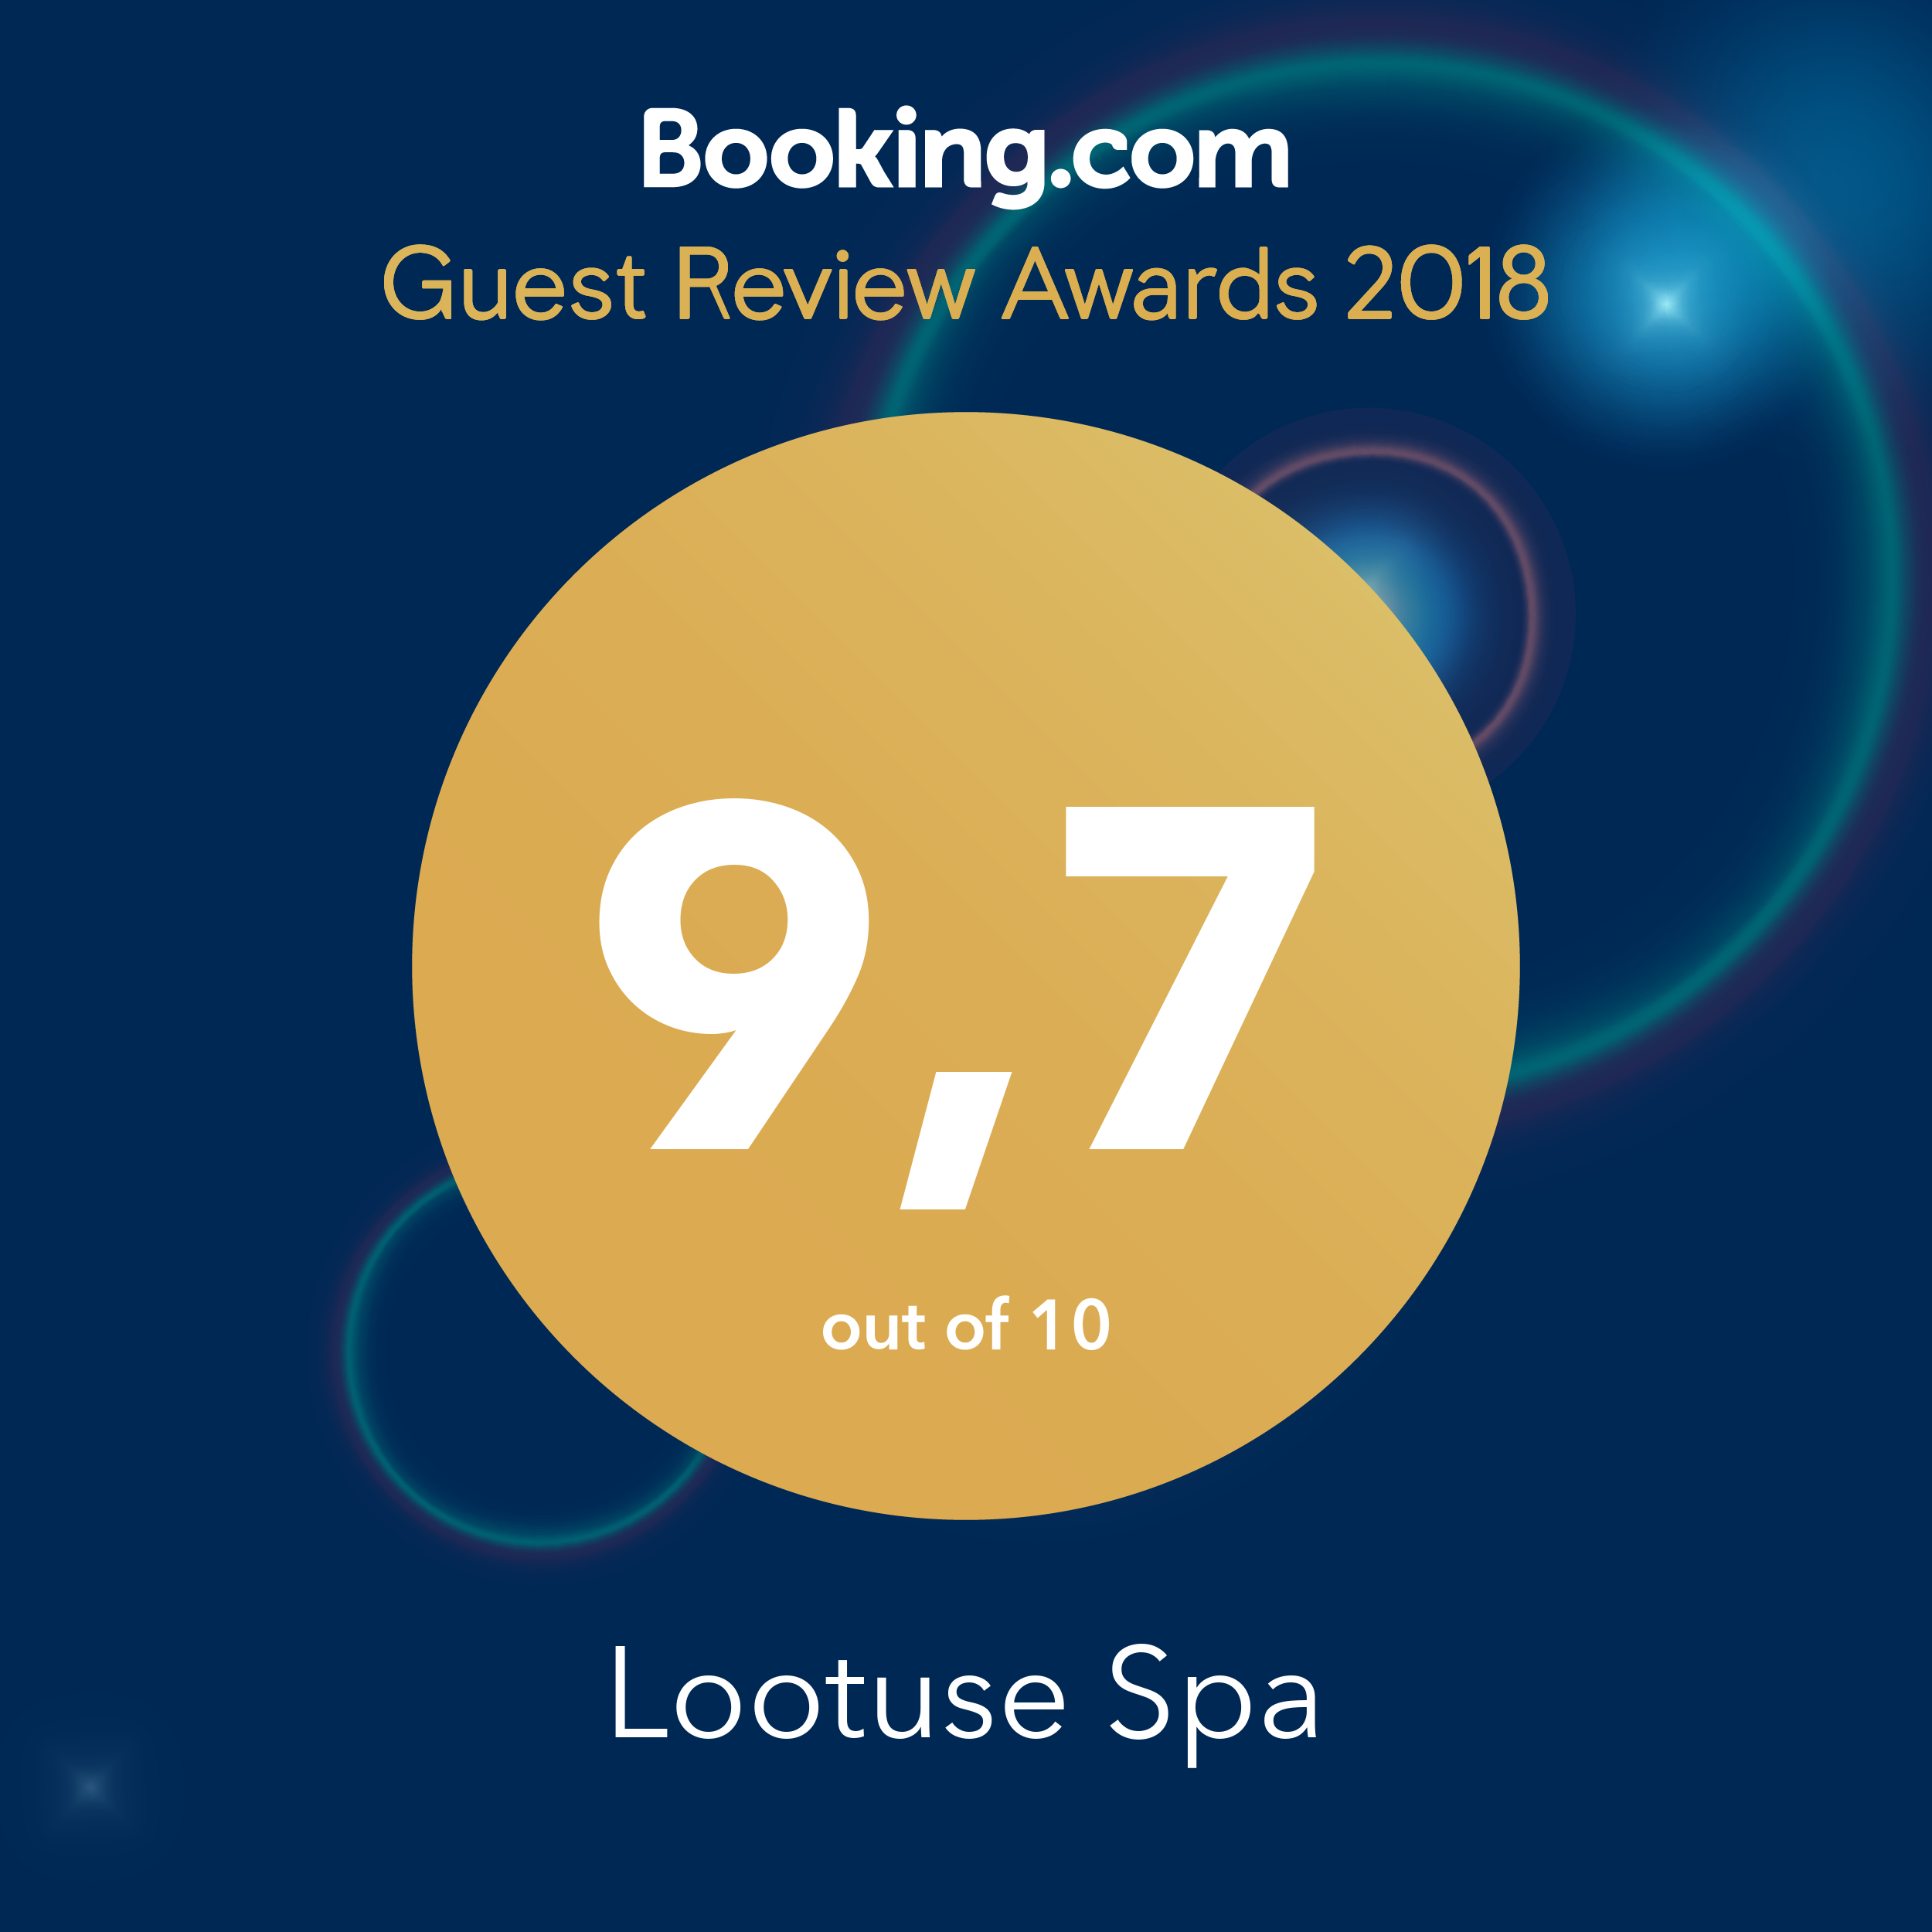 Booking-com Guest Review Awards 2016